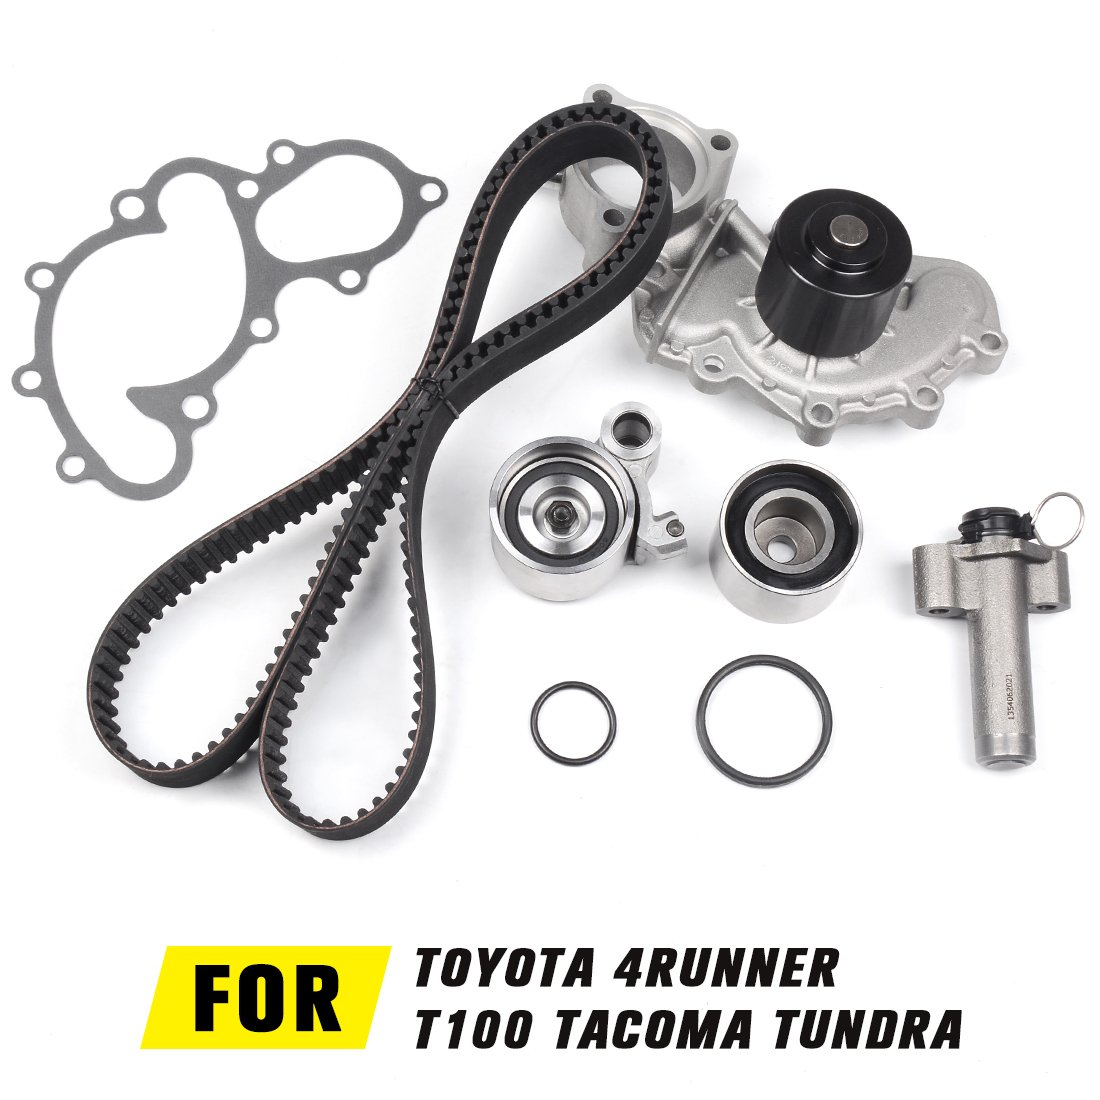 Tkt 025 Engine Timing Belt Kit With Water Pump For Toyota 4runner 1996 2002t100 1995 1998tacoma 2004tundra 2000 2004 34l V6 Automotive